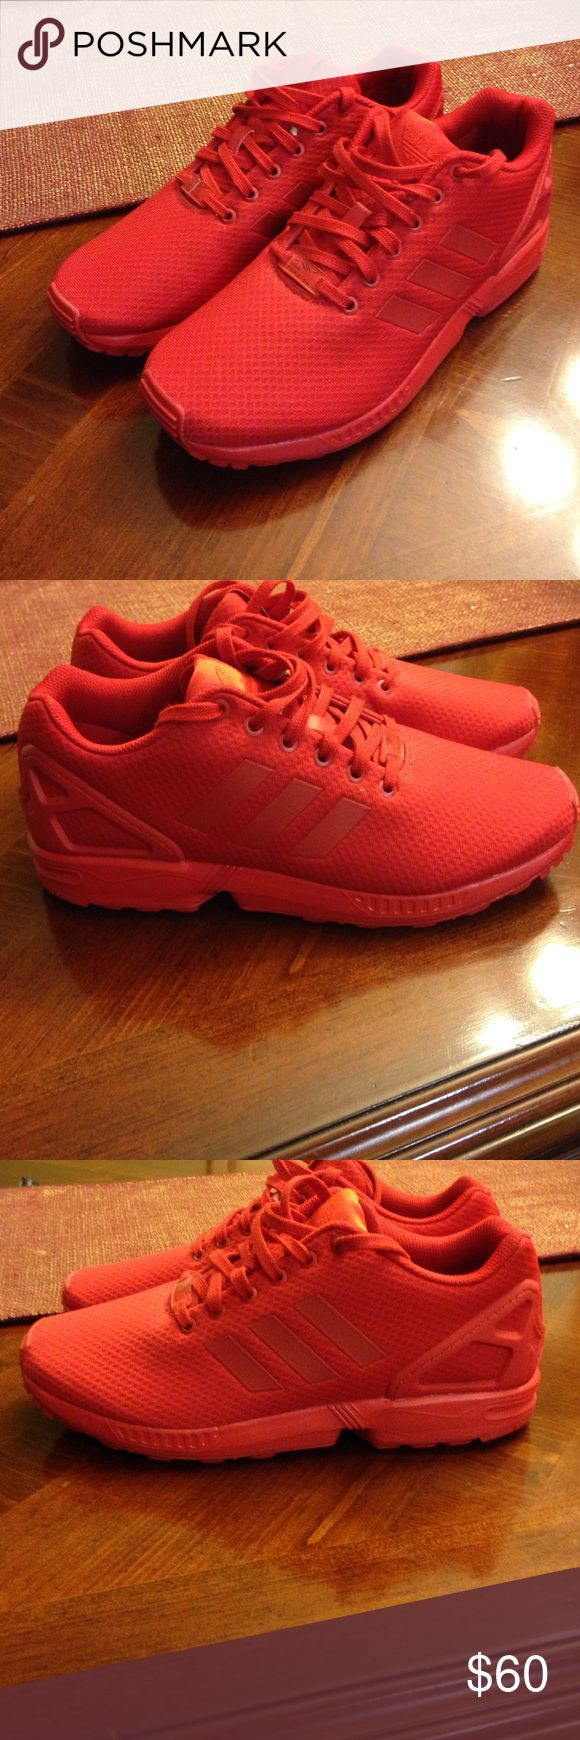 Men's Adidas ZX Flux Size: 9, Adidas ZX Flux, only worn twice, comes with original box Adidas Shoes Sneakers